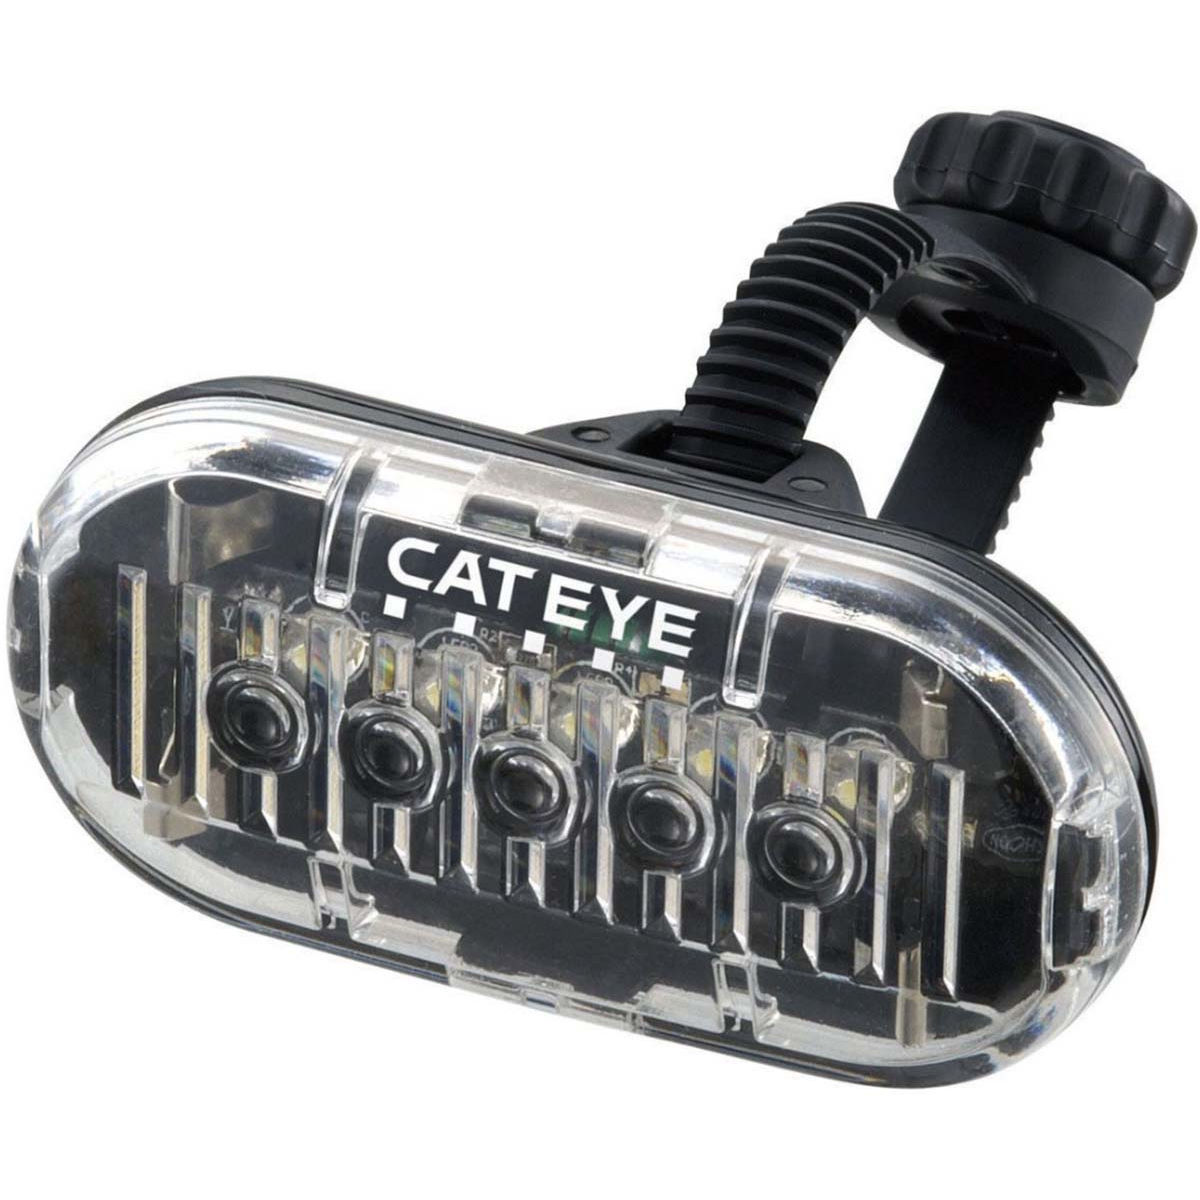 Cateye Cateye Omni 5 Front Light   Front Lights